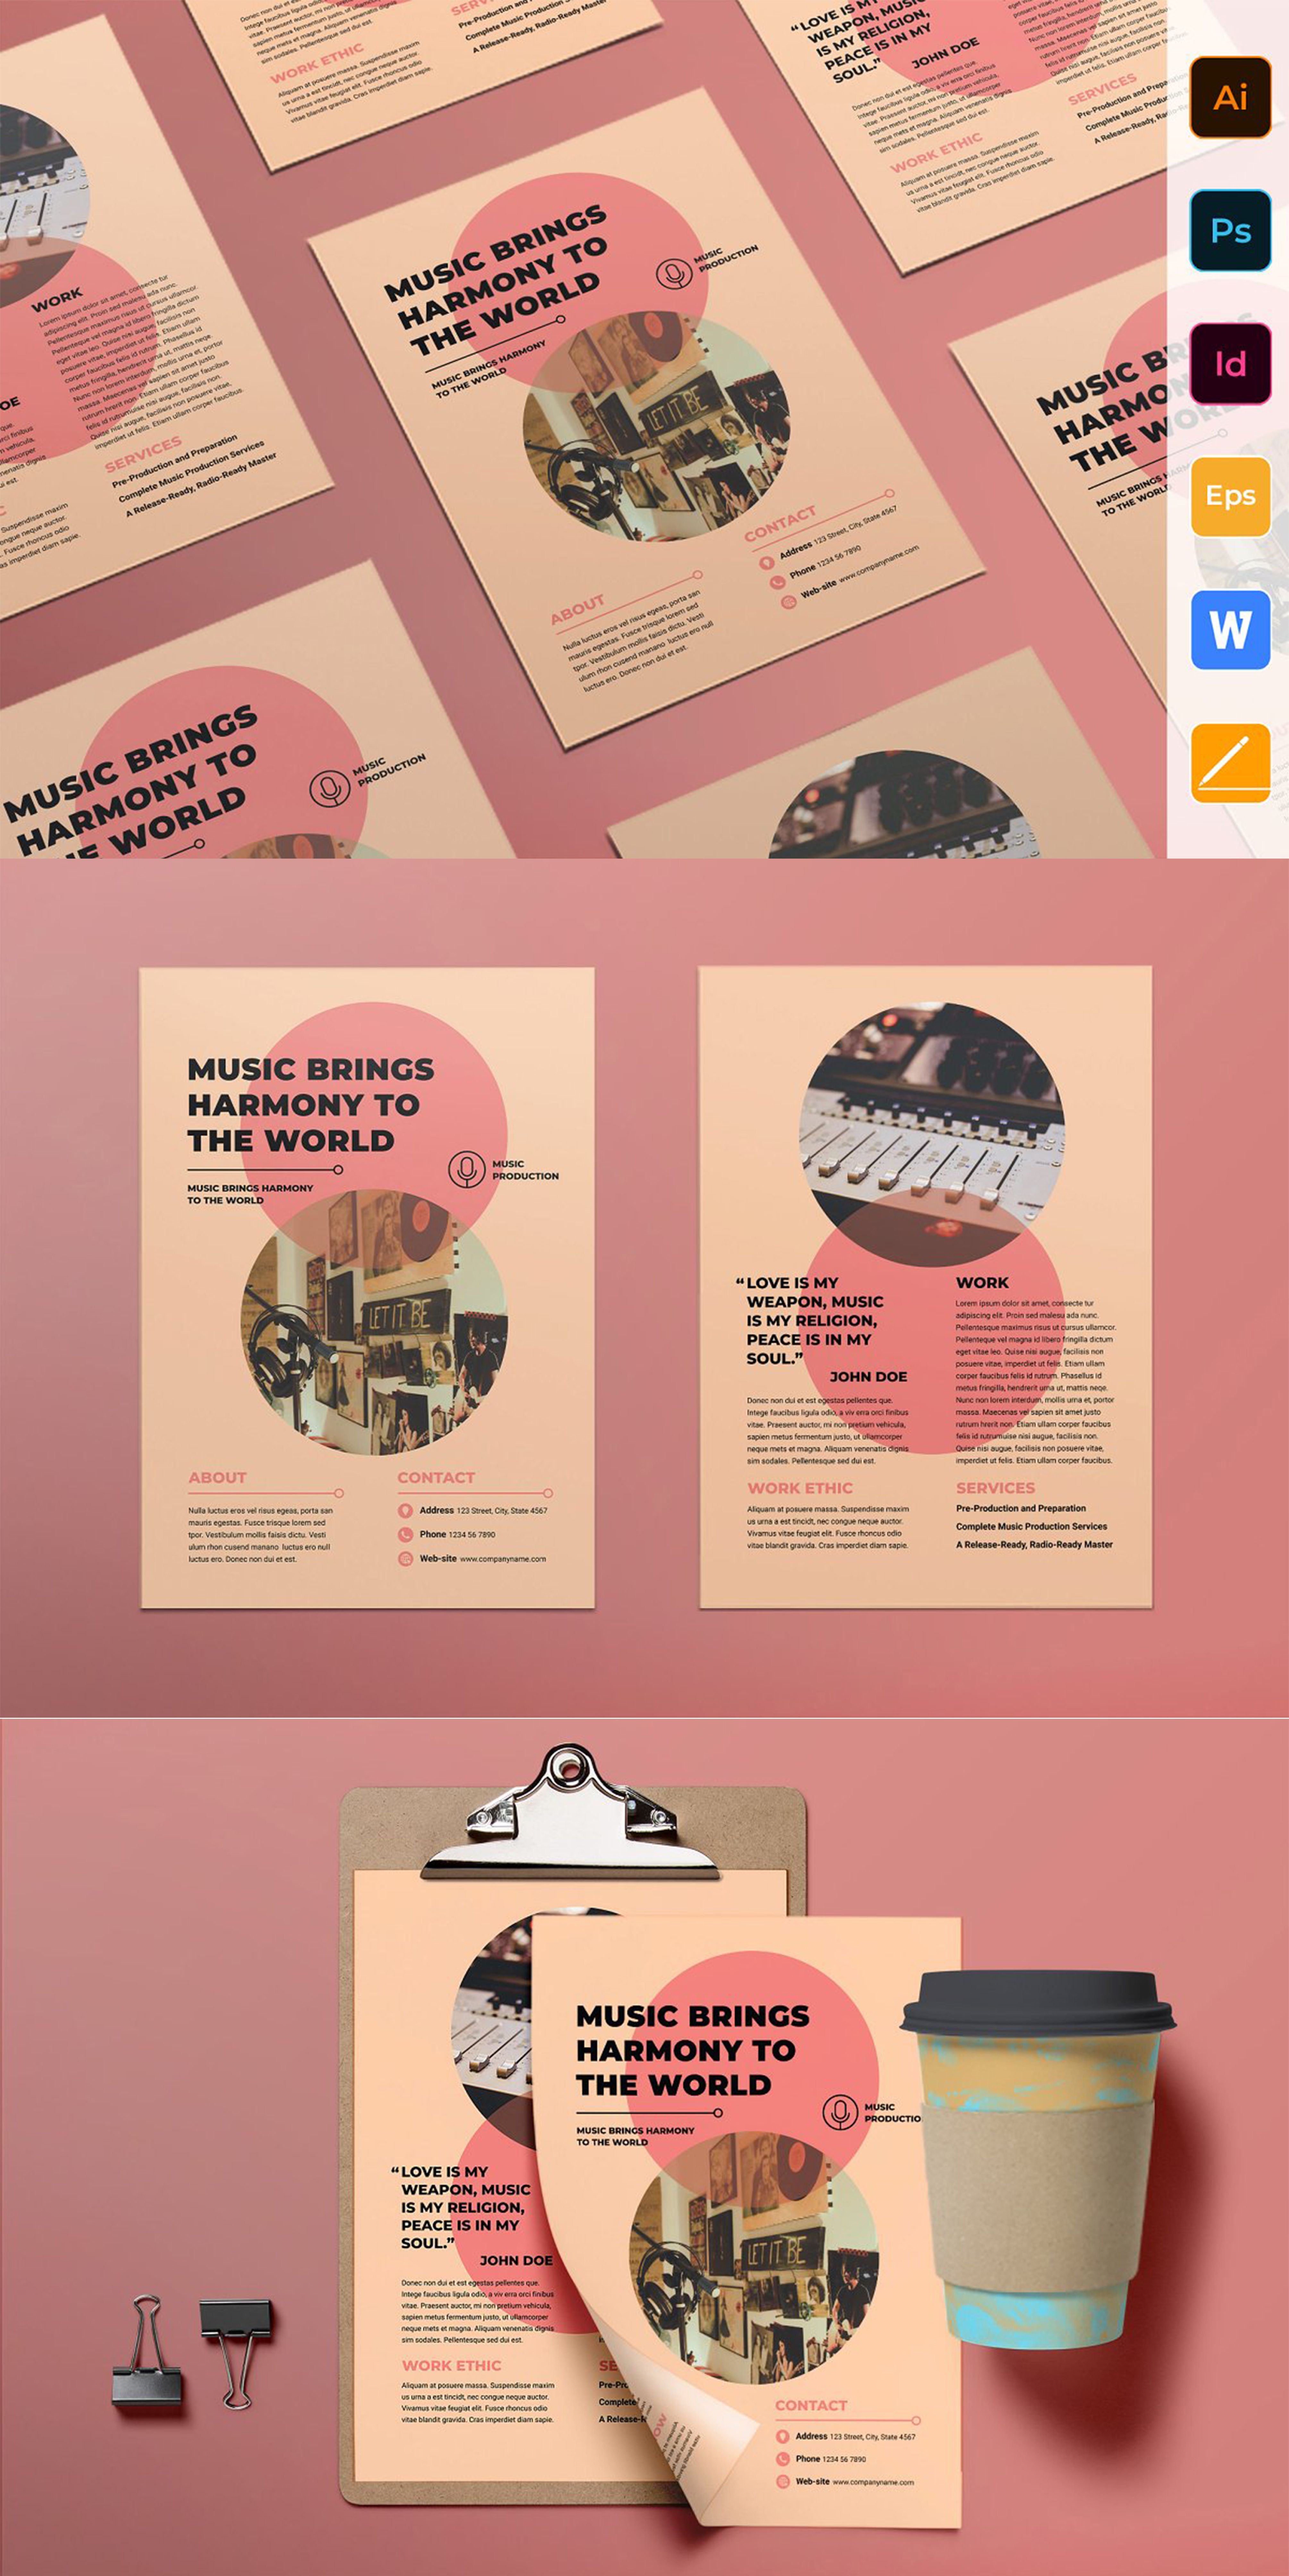 12 Event Flyer Design Examples & Ideas - Daily Design Inspiration, flyers templates, poster design